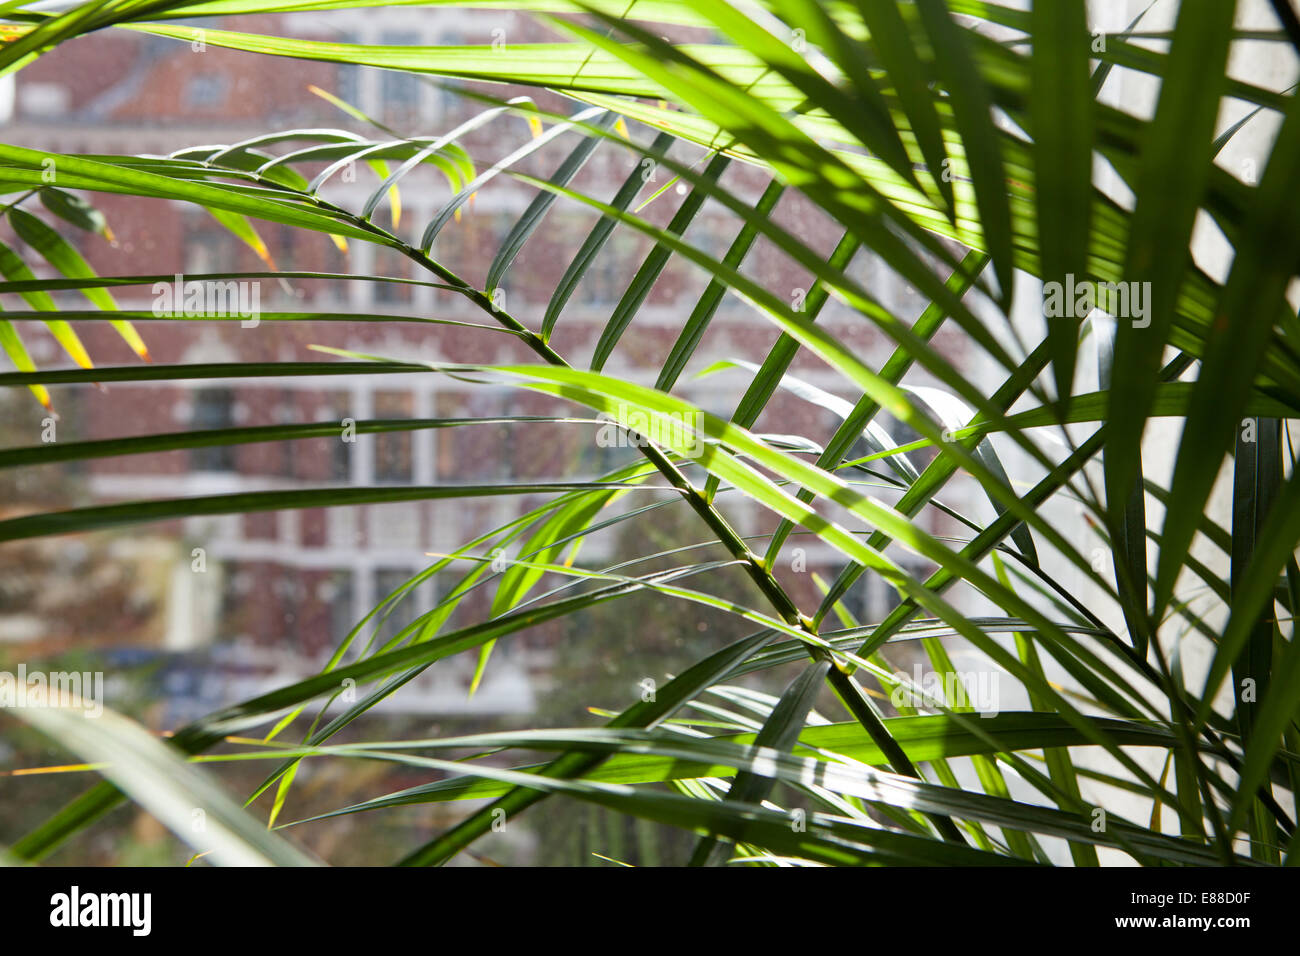 View through a dirty window pane, Lindener marketplace, Hanover, Lower Saxony, Germany, Europe - Stock Image